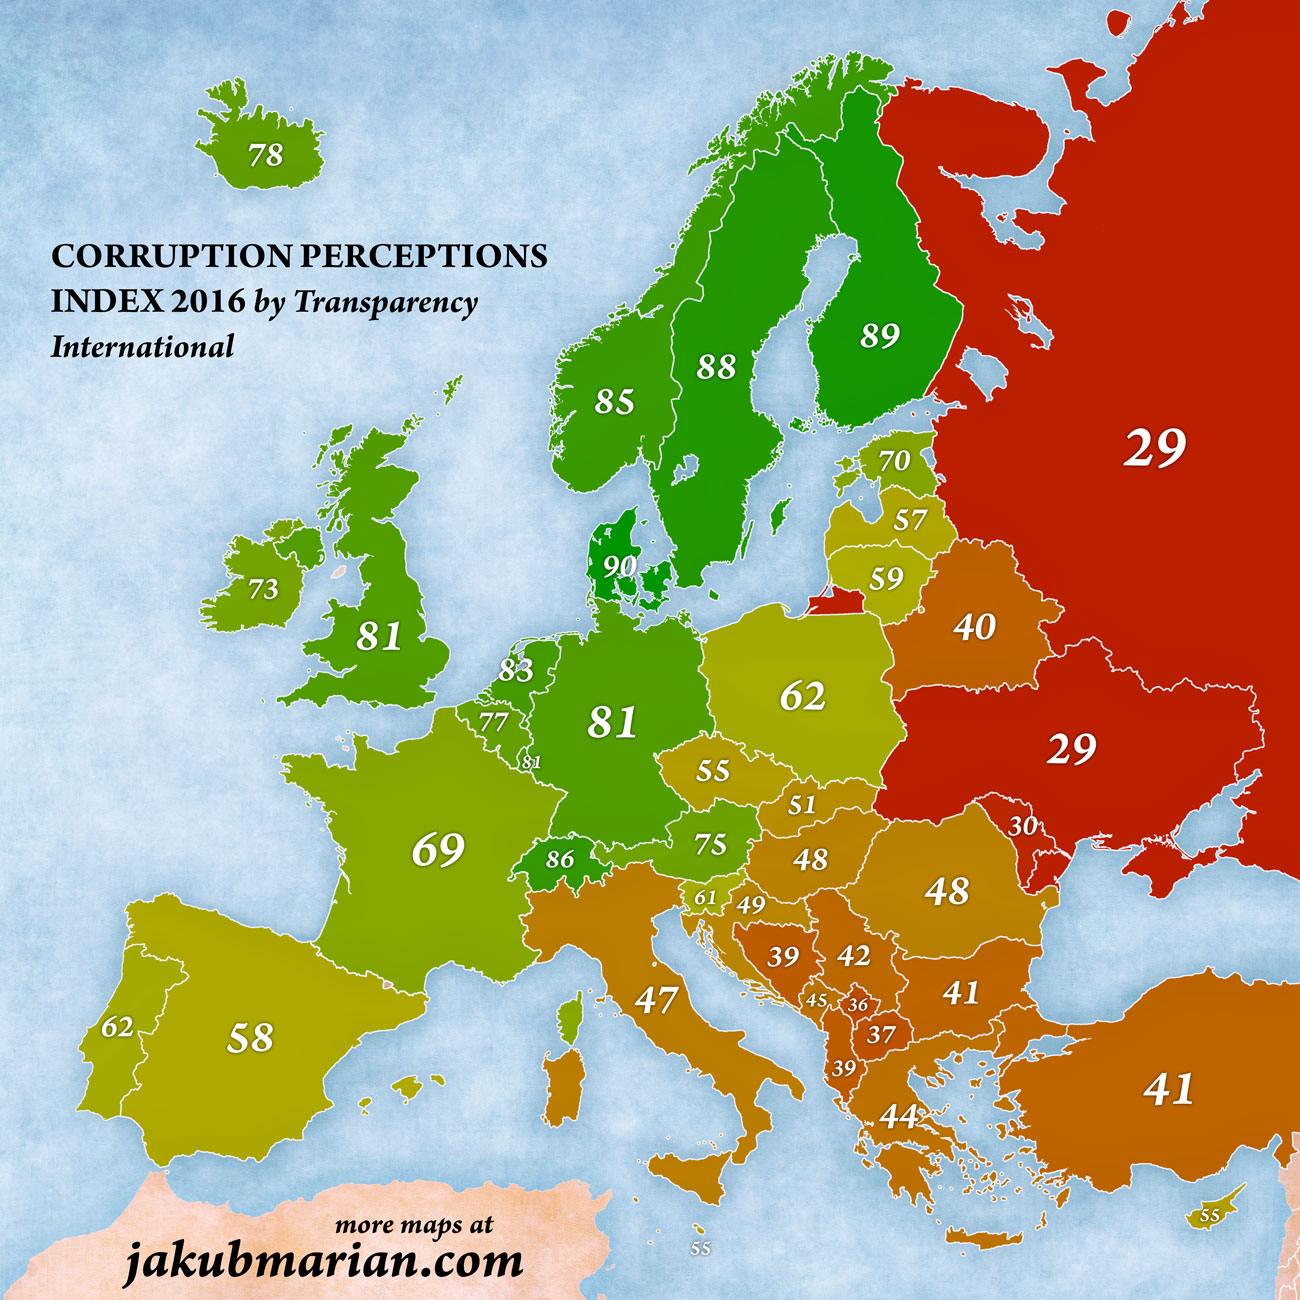 Corruption Perception Index in Europe 2016